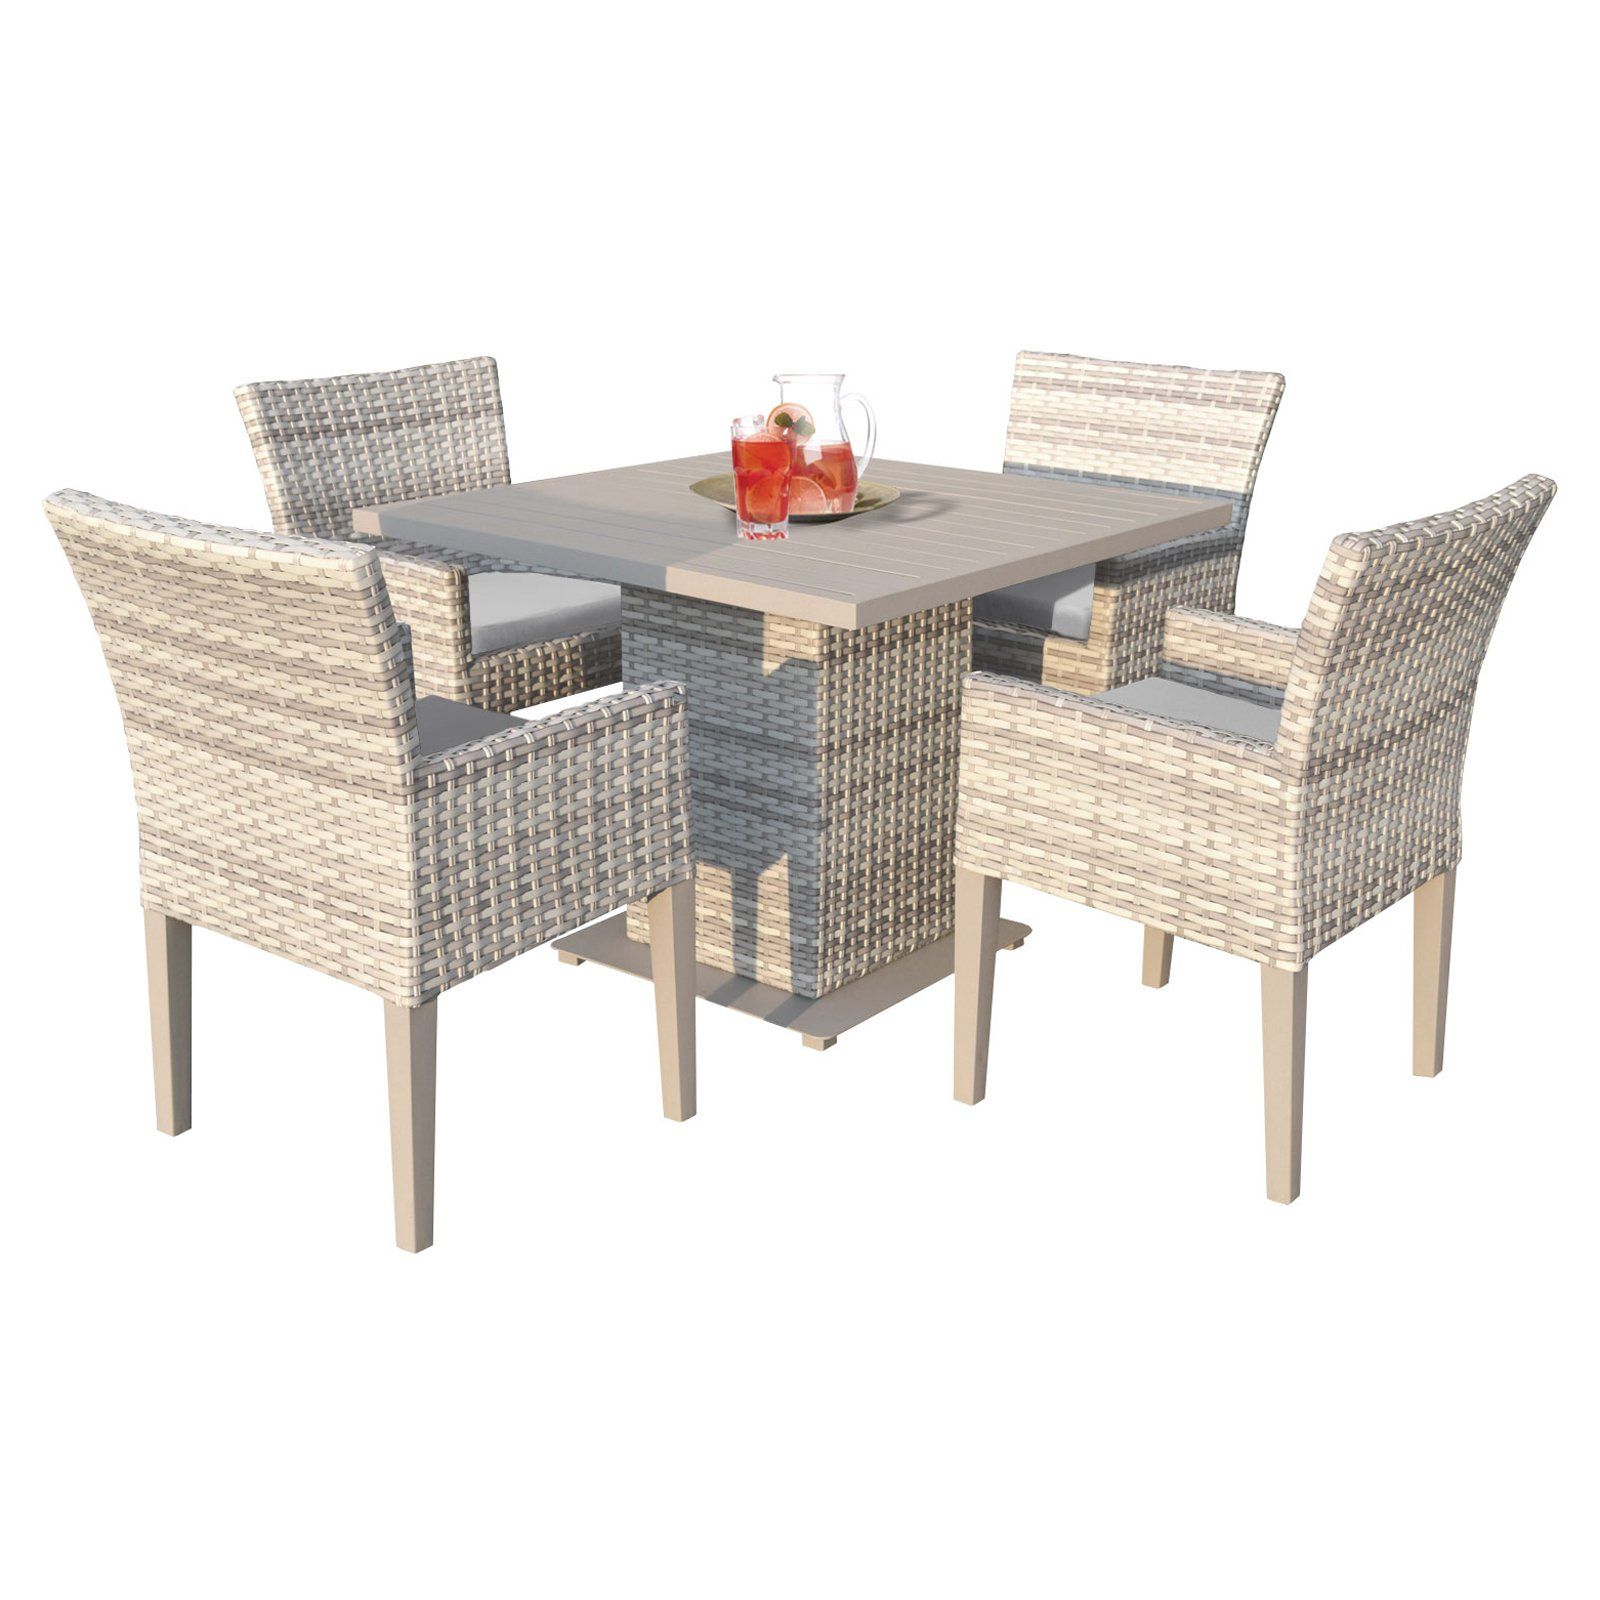 TK Classics Fairmont Wicker 5 Piece Square Table Patio Dining Set